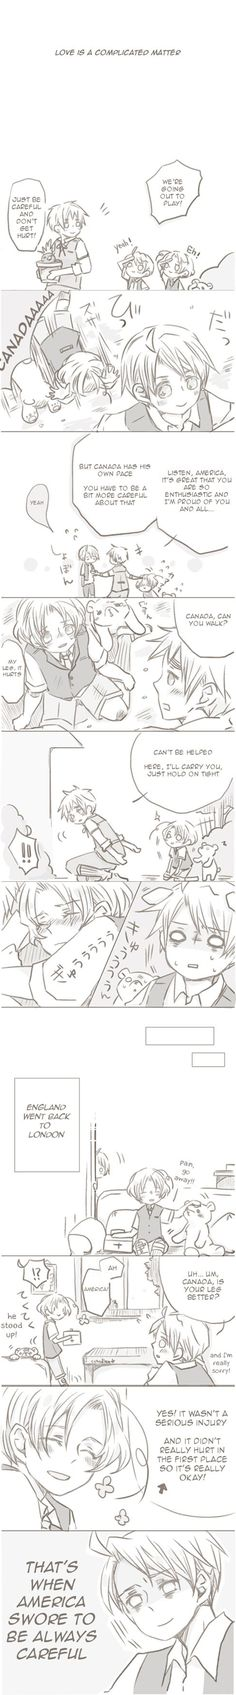 fancomic starring Arthur, Alfred, and Matthew. Original Japanese by Meie on…